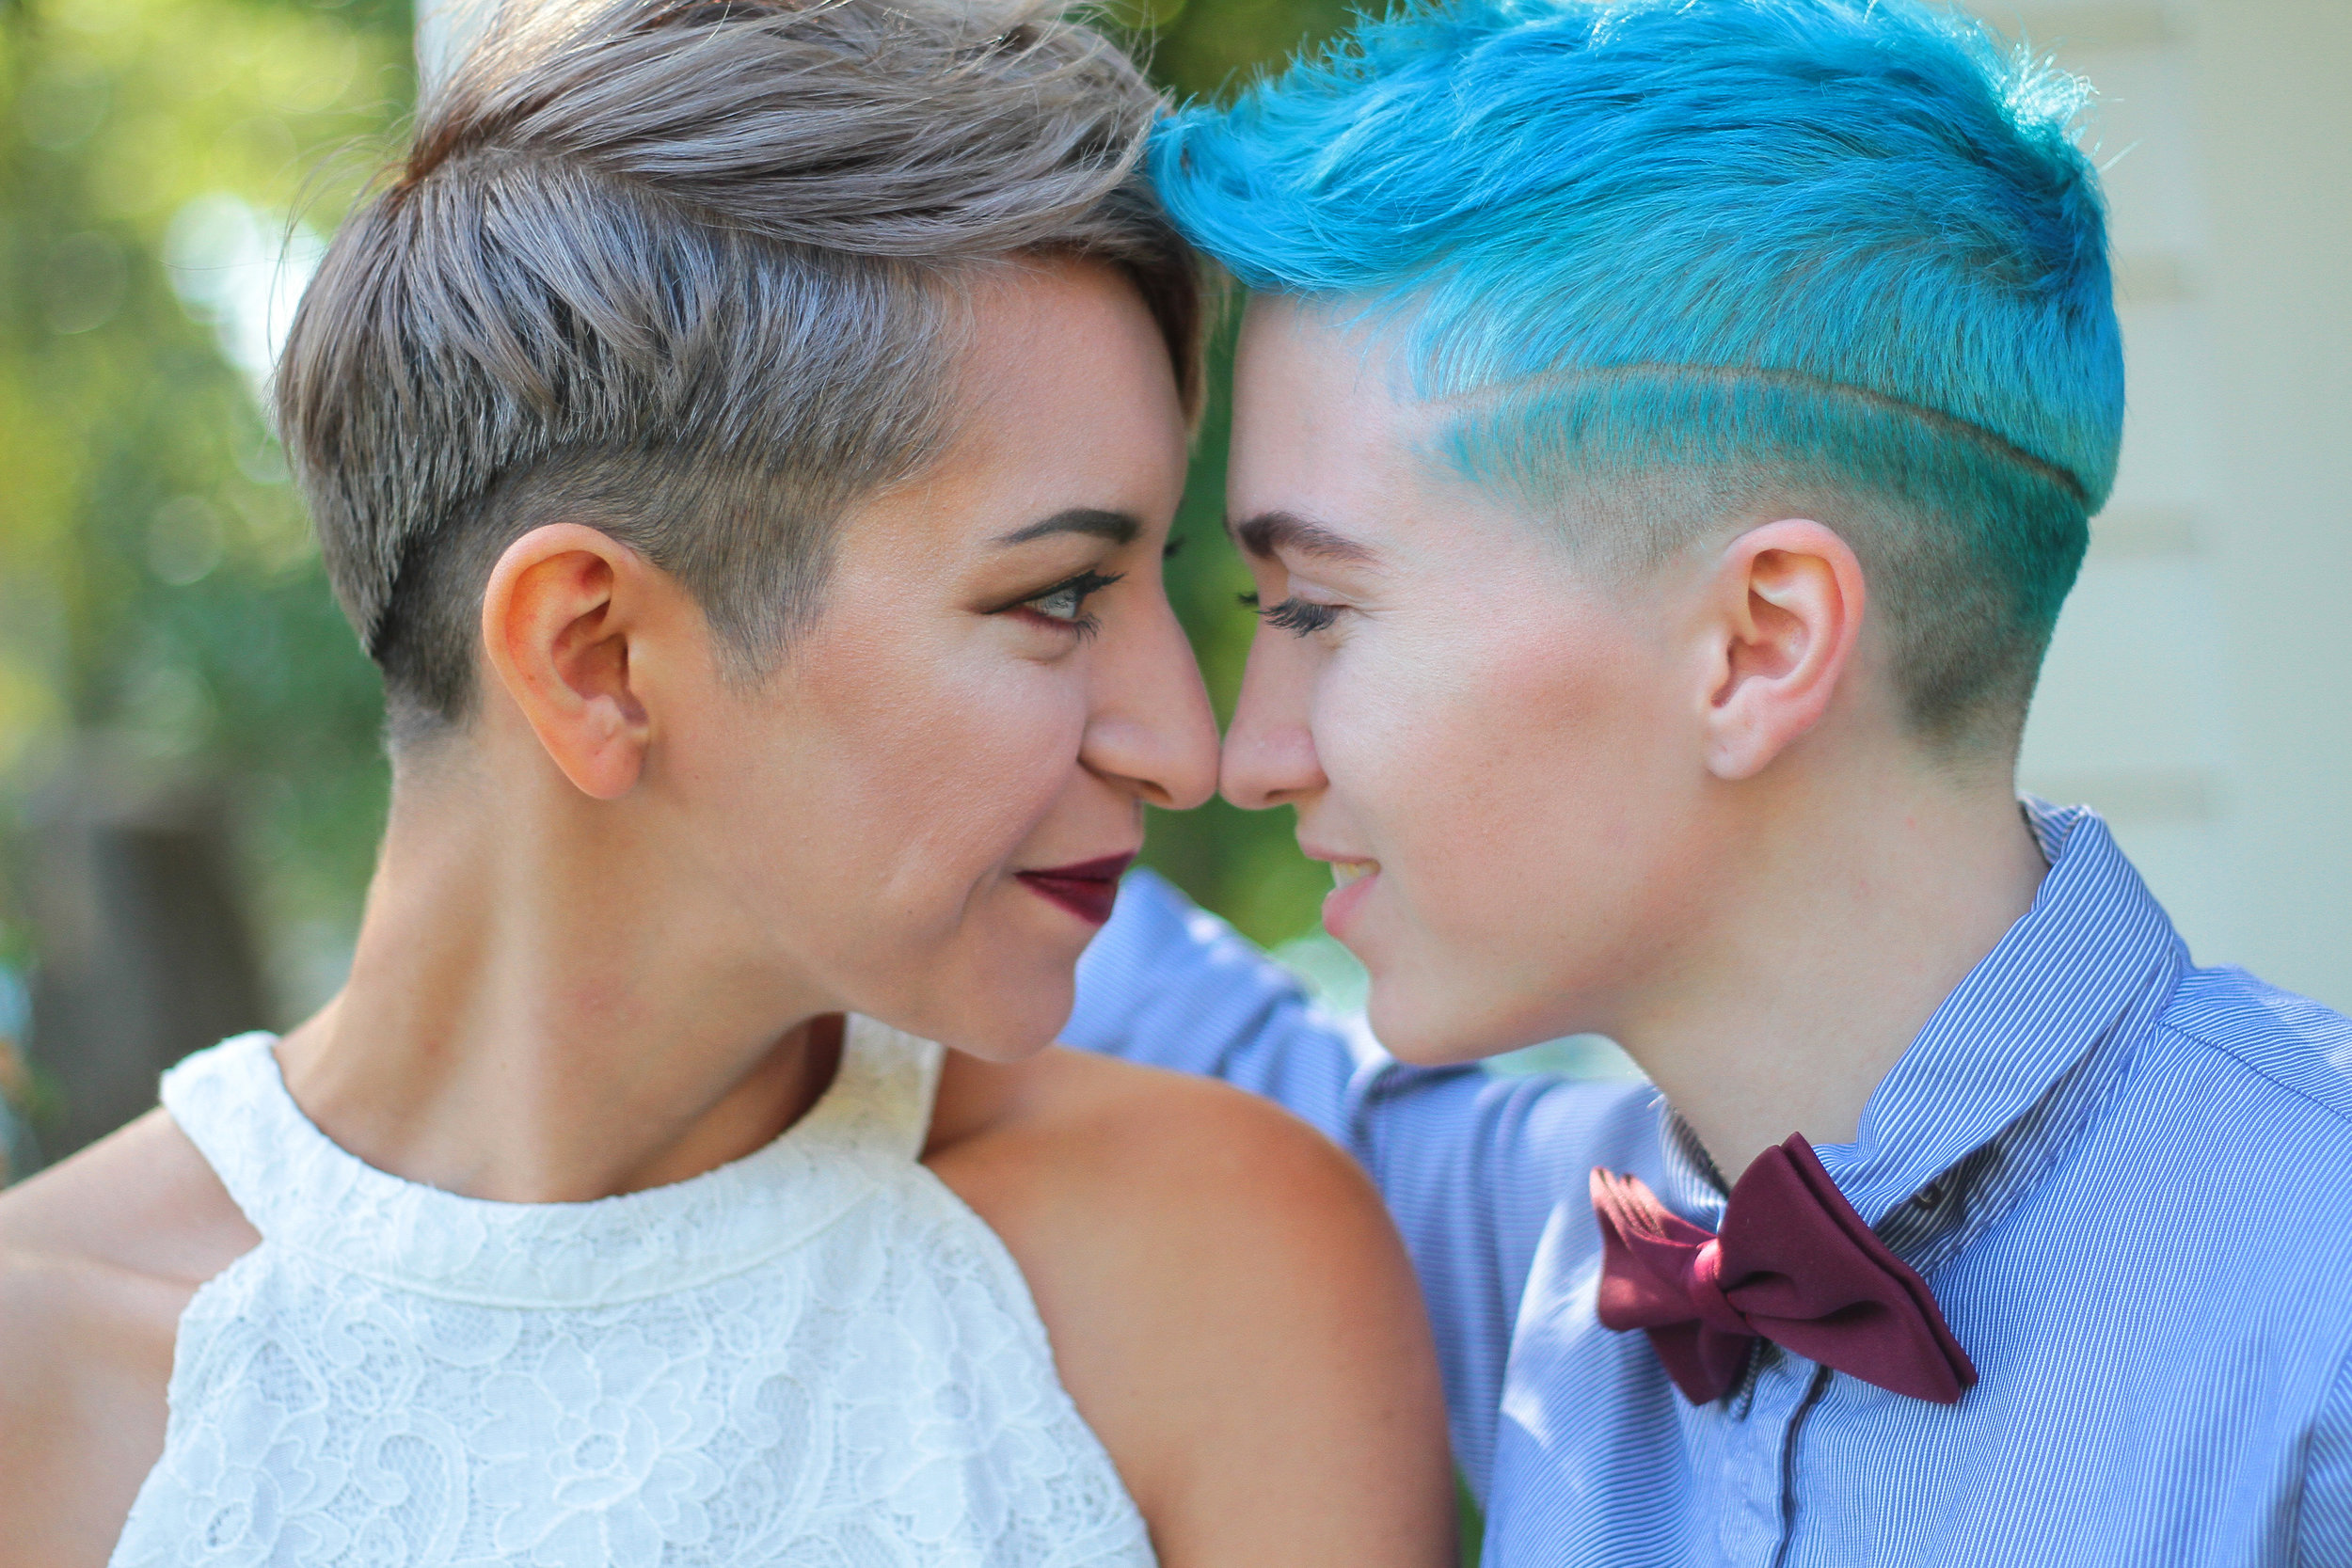 Our Mission: - To accelerate equality and social and economic inclusion for lesbian, gay, bisexual, transgender and intersex people.